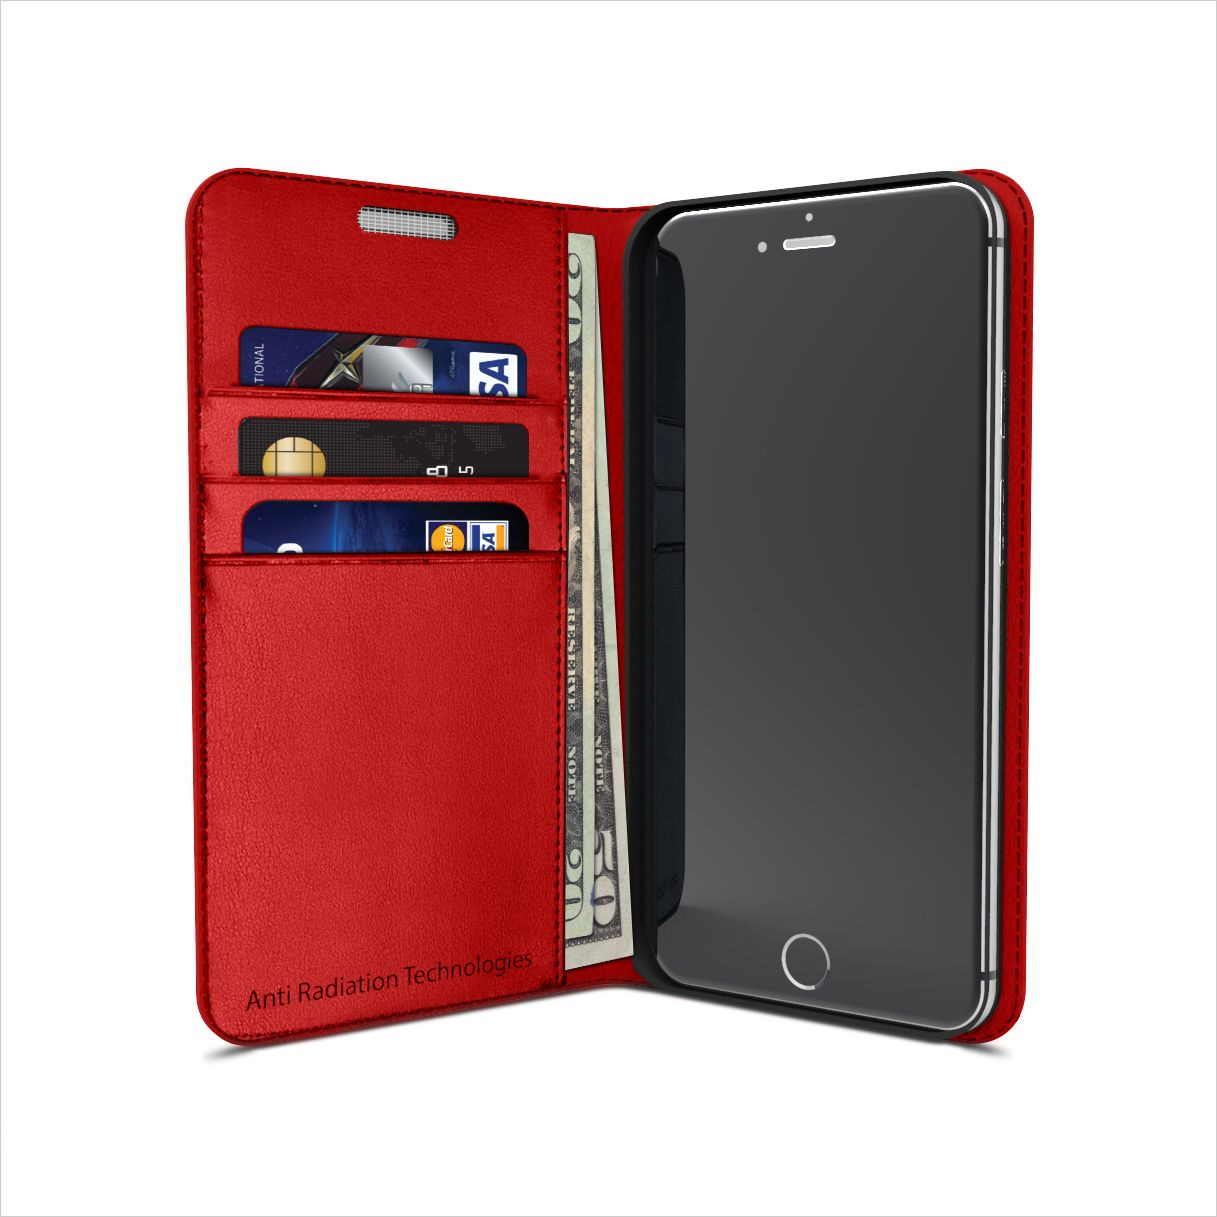 product image for Vest Anti-Radiation Wallet and Phone Case EMF & RFID Protection